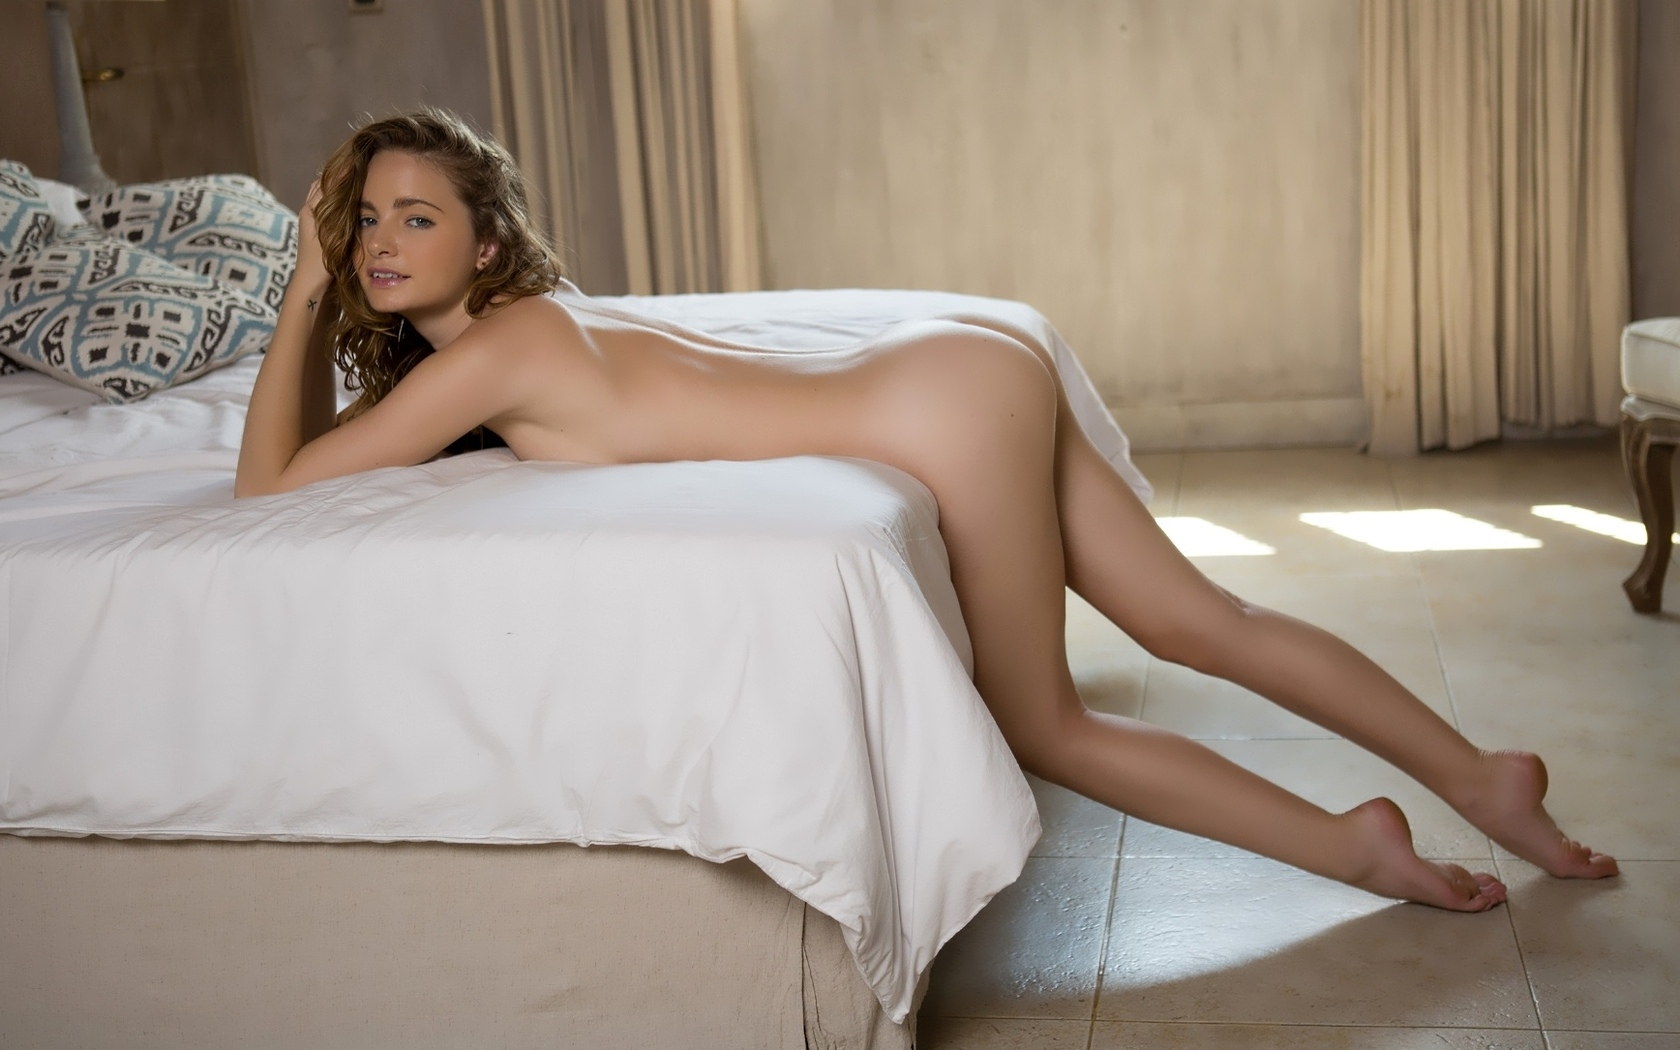 women-with-long-legs-naked